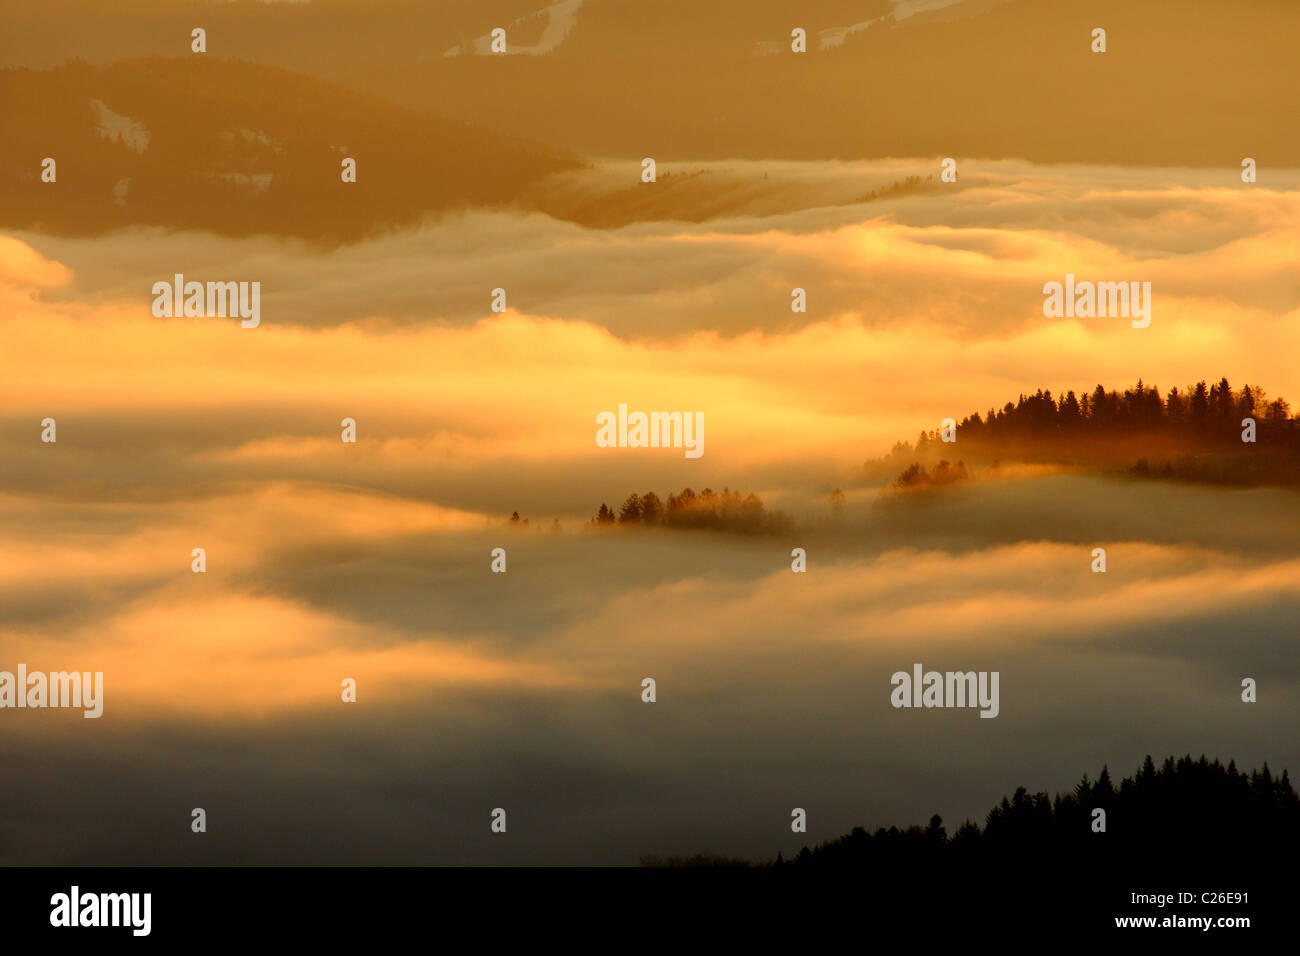 Morning clouds and fogs in polish mountains - sunrise in Beskid Sadecki, Poland - Stock Image